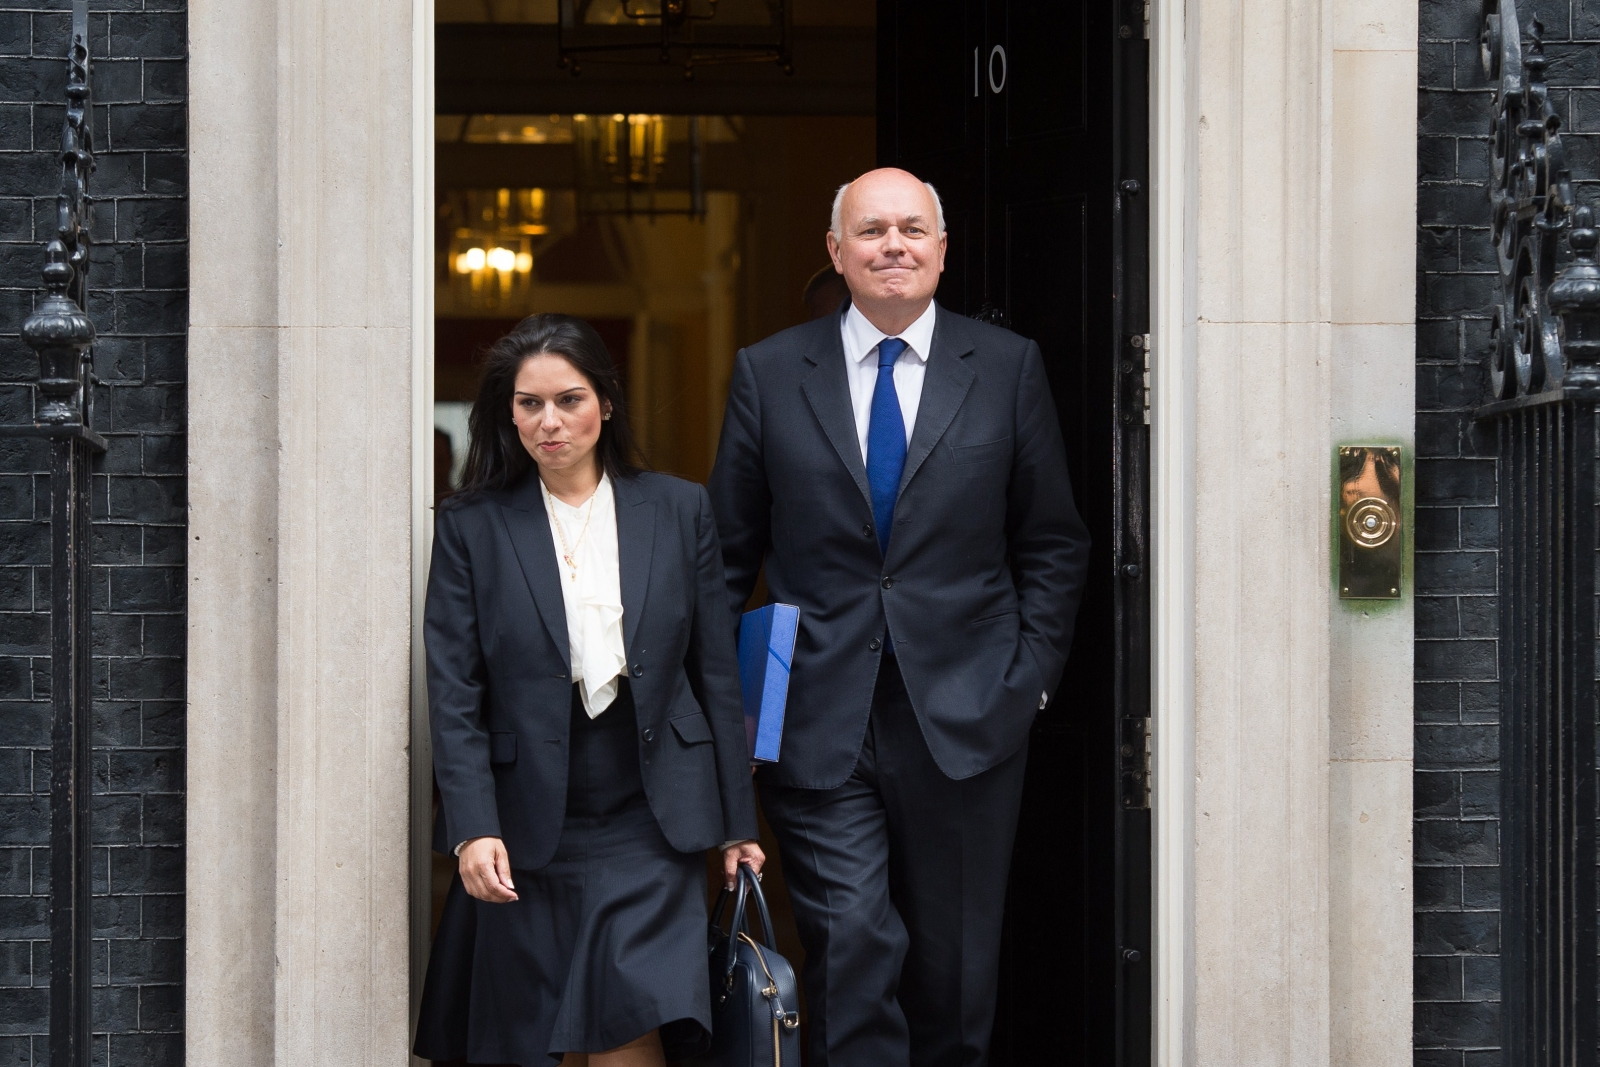 Iain Duncan Smith, the Secretary of State for Work and Pensions